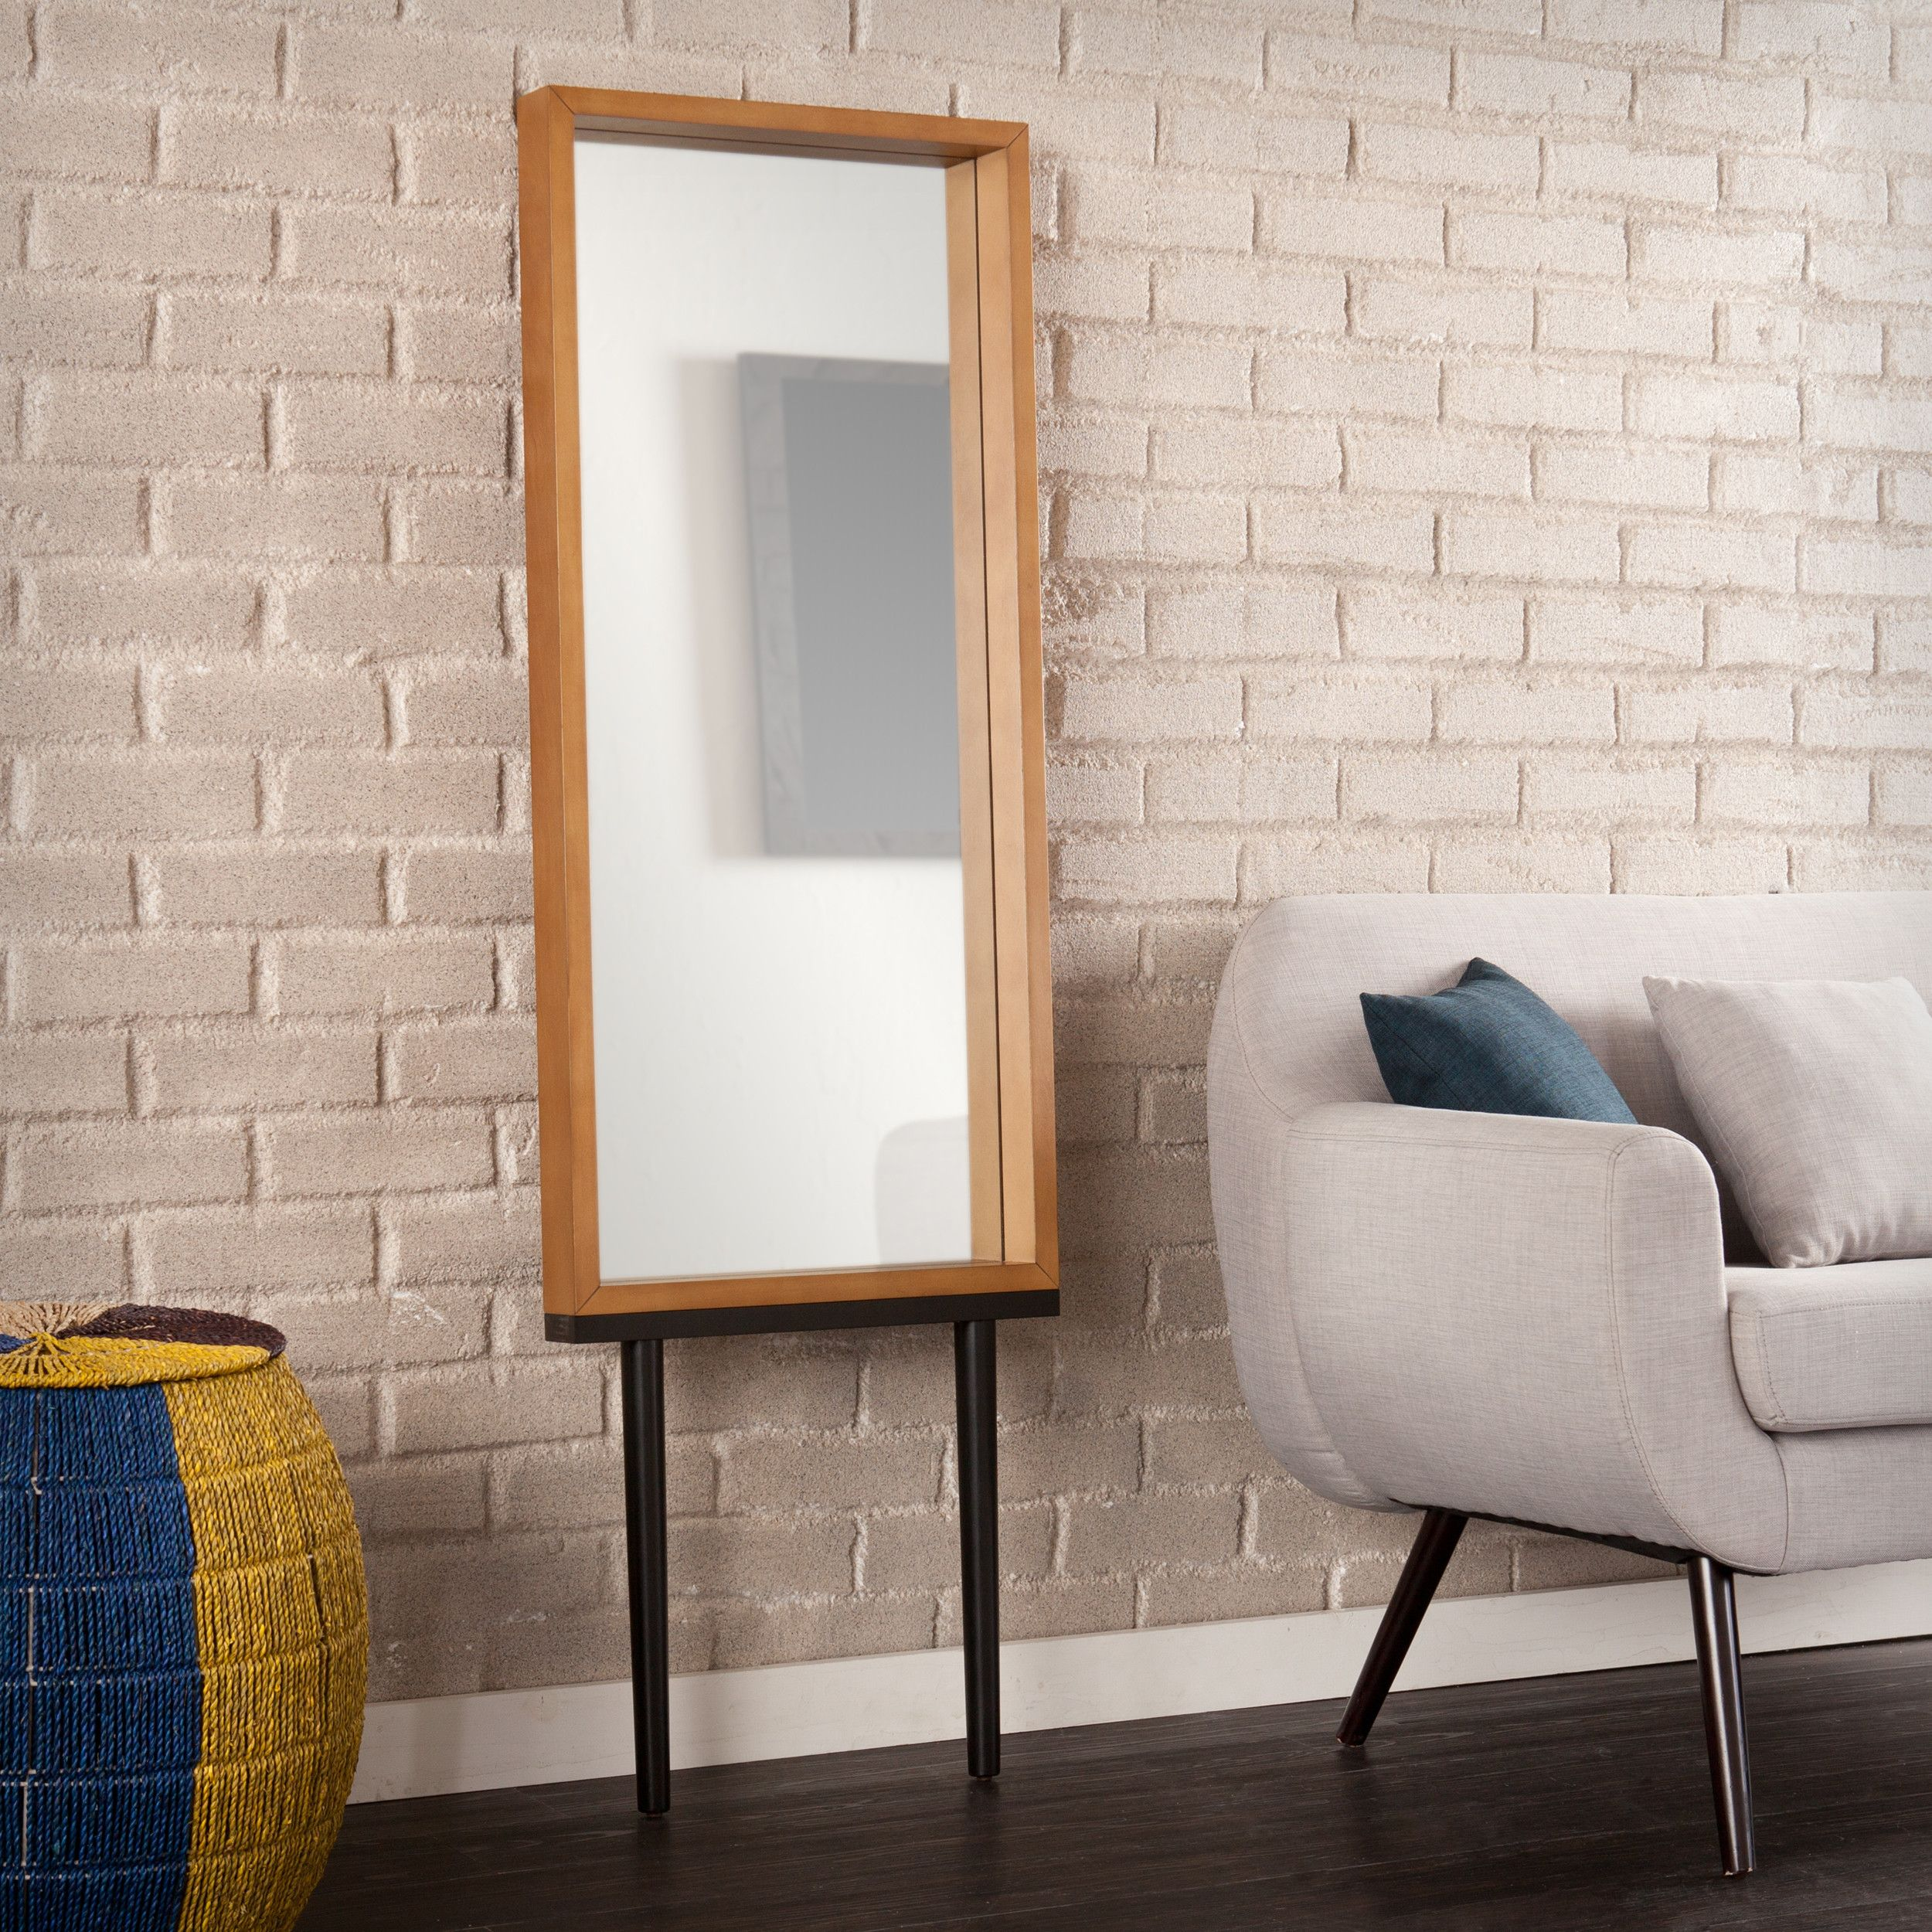 Large Sheet Mirror Lean Against Wall Google Search